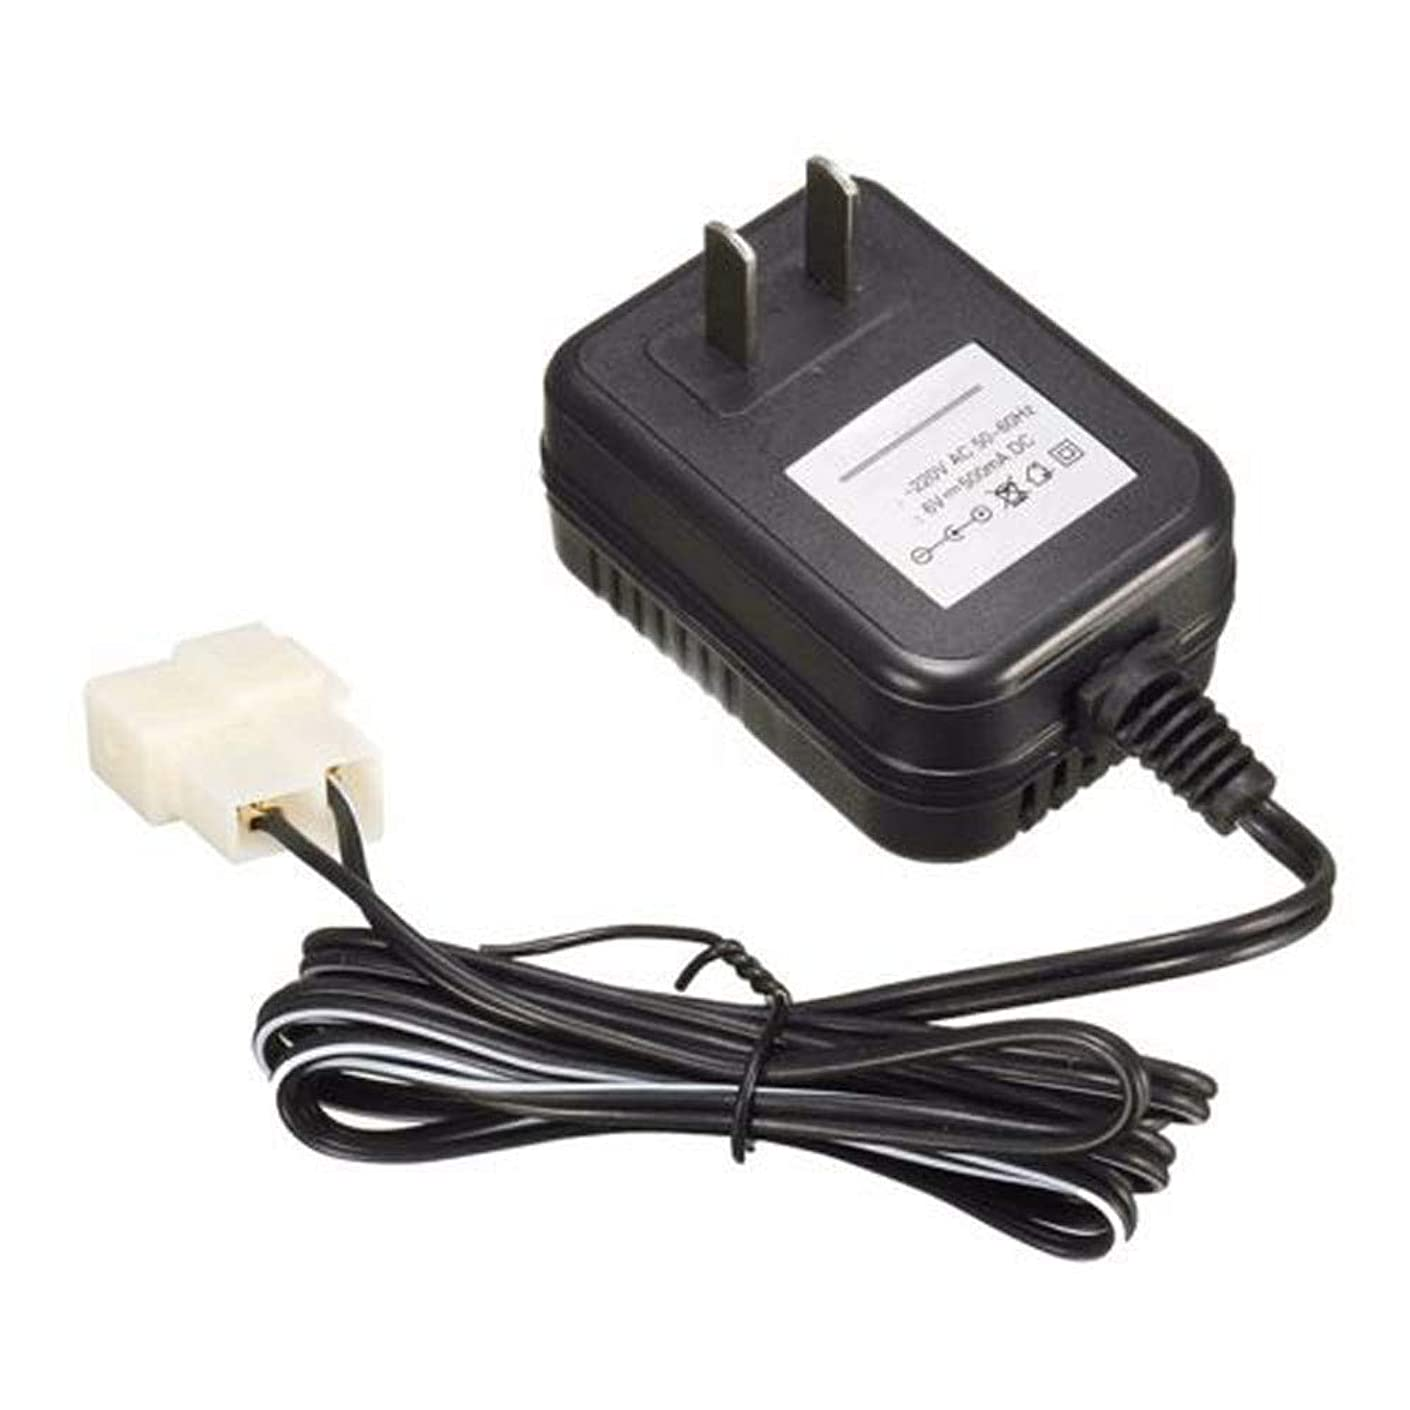 Livoty Charger,6V Wall AC Adapter Charger Power Supply for Kid TRAX ATV Quad Ride On Car IN9